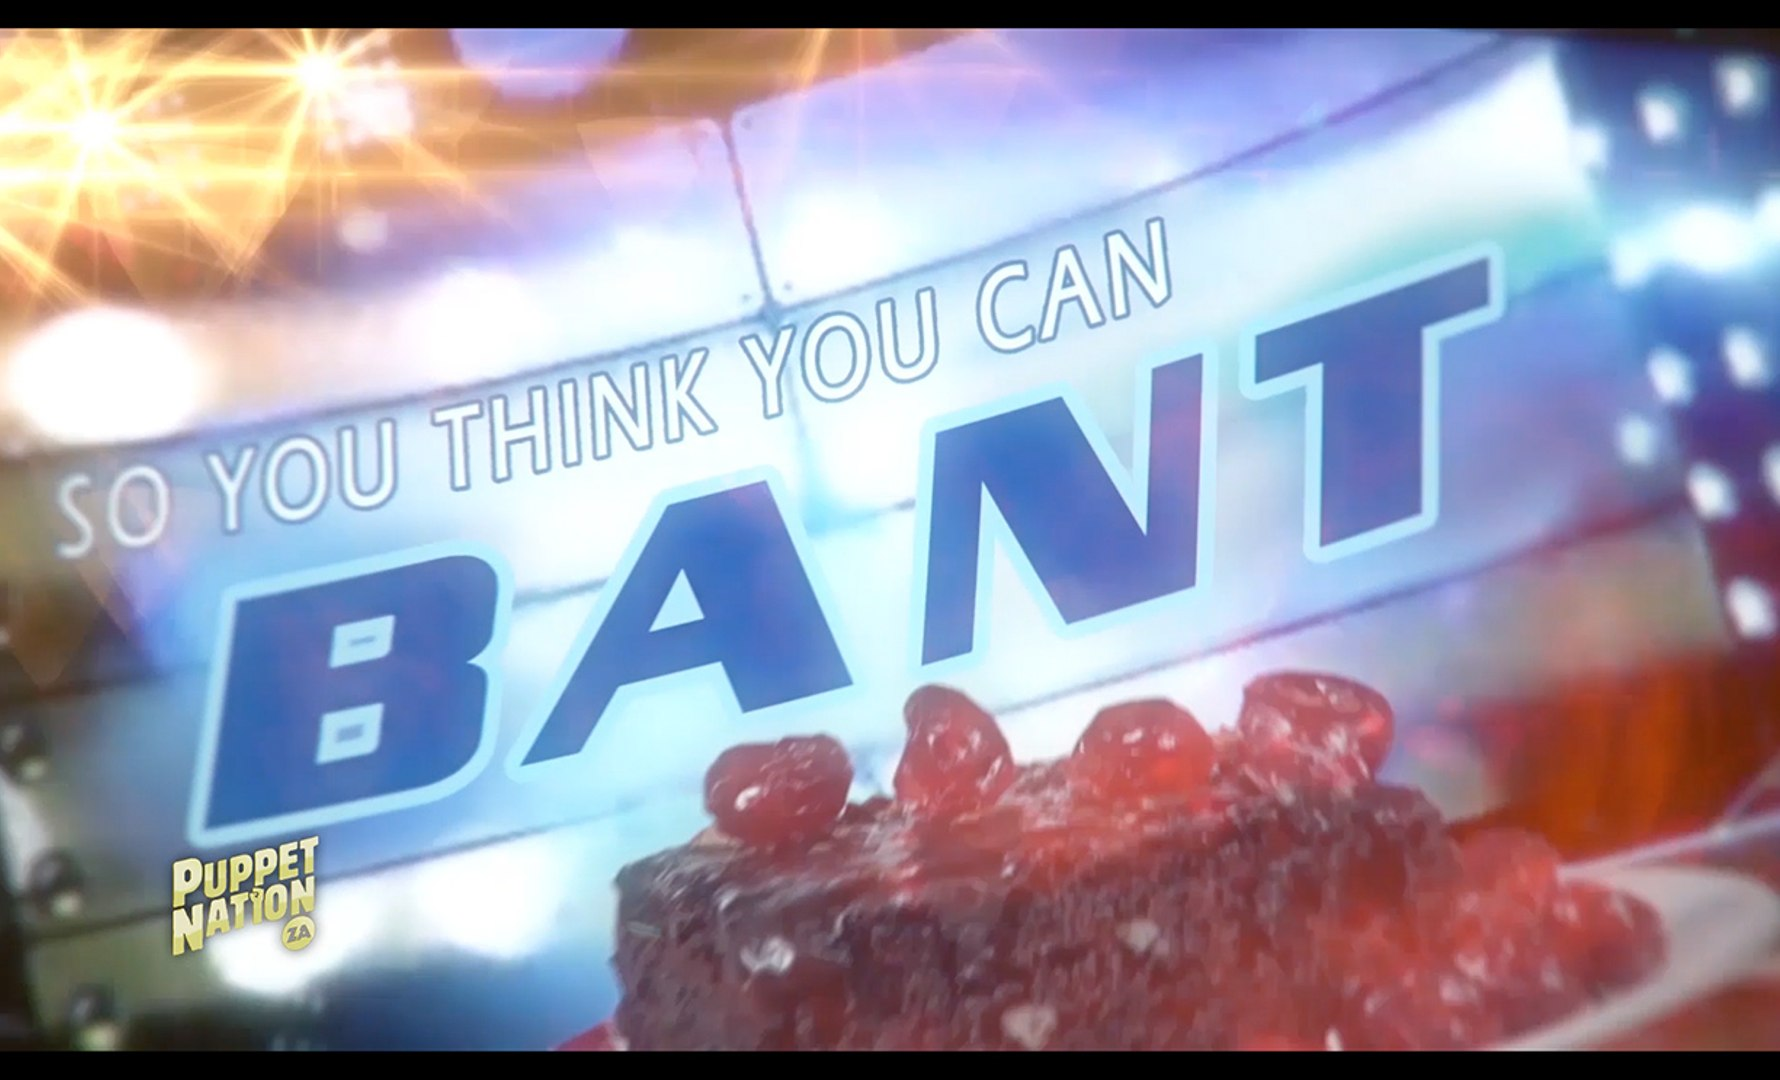 So You Think You Can Bant